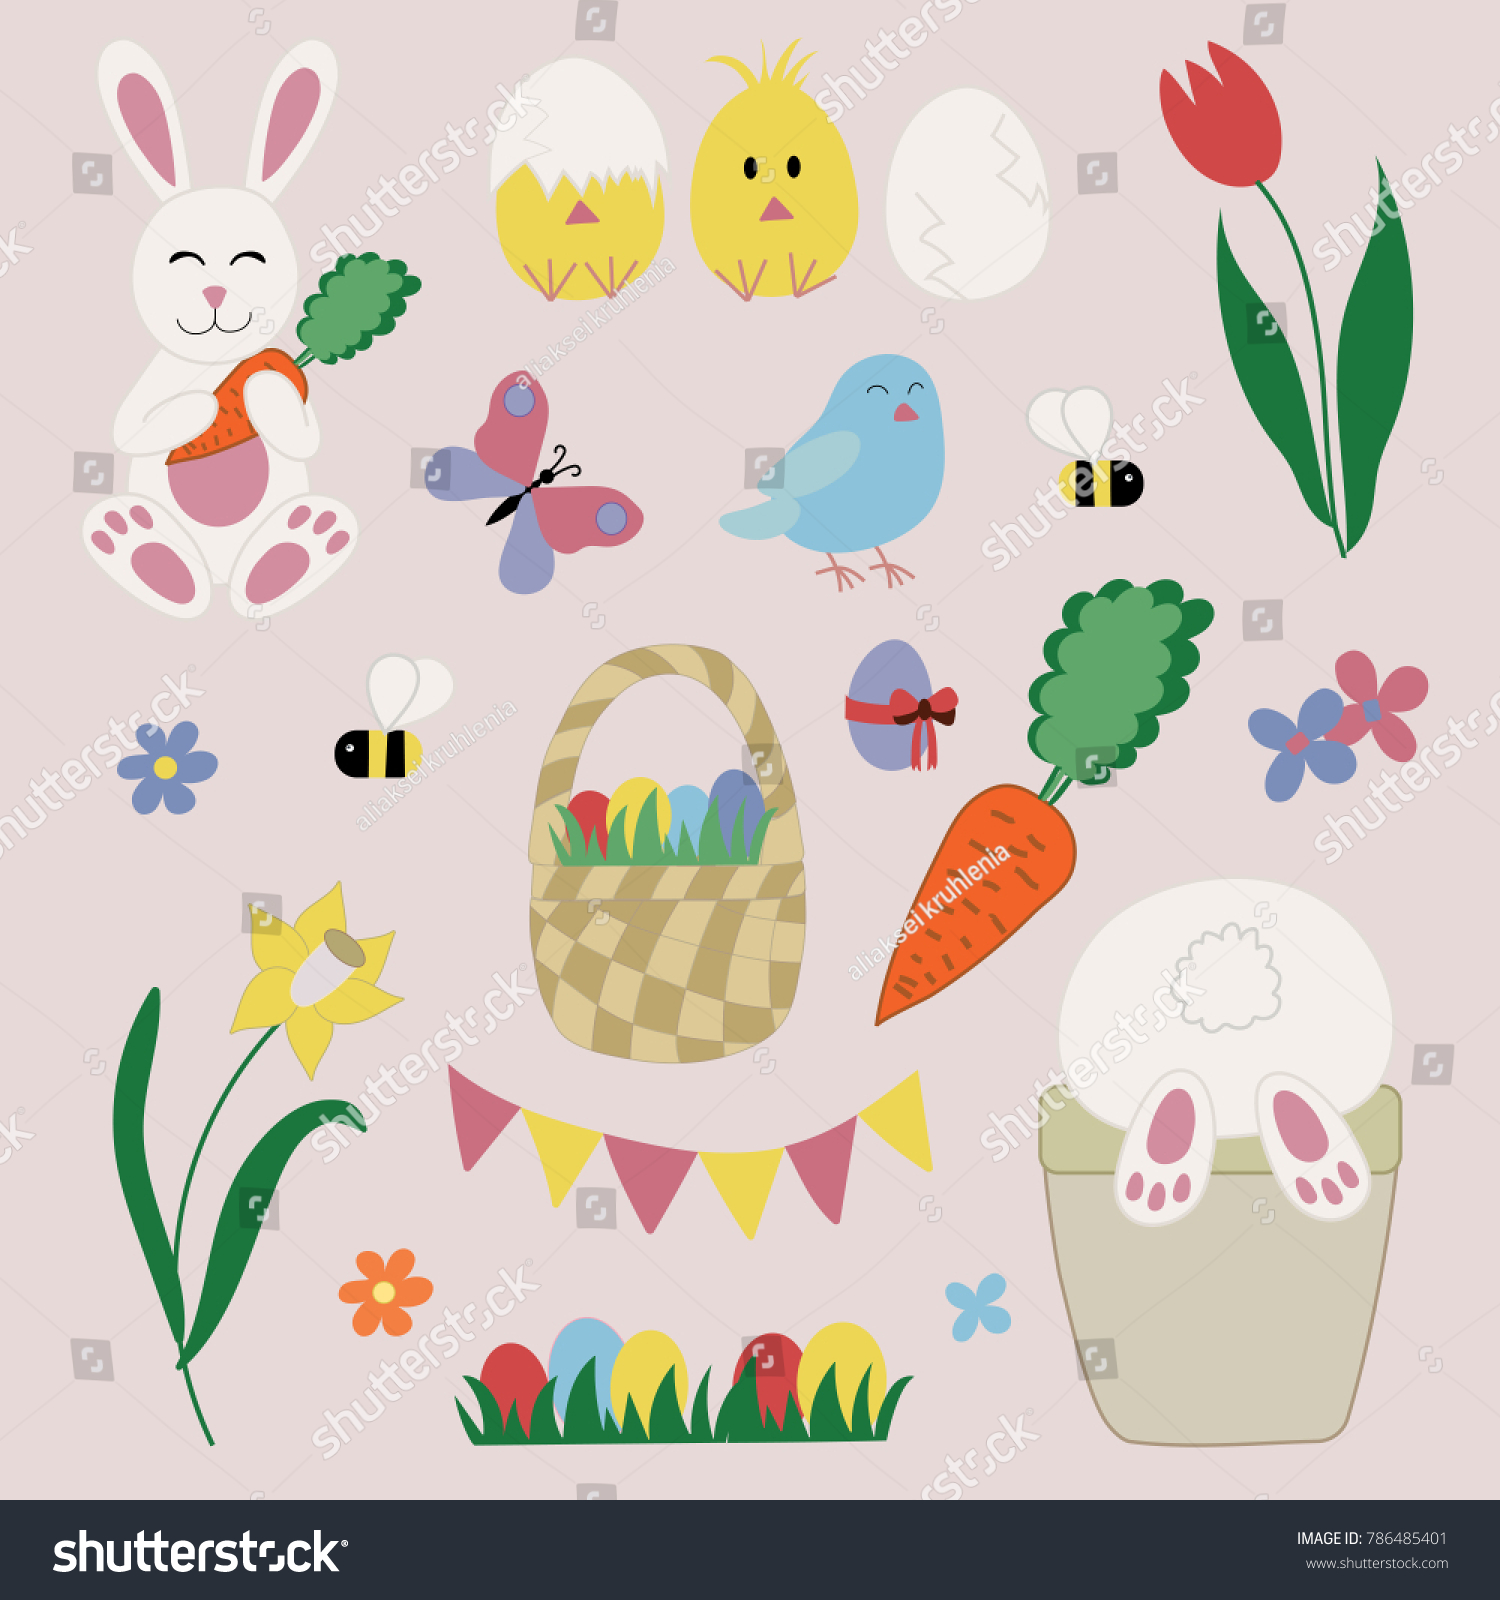 Easter symbols and traditions image collections symbol and sign easter icons set traditional festive symbols stock vector easter icons set with traditional festive symbols such negle Choice Image